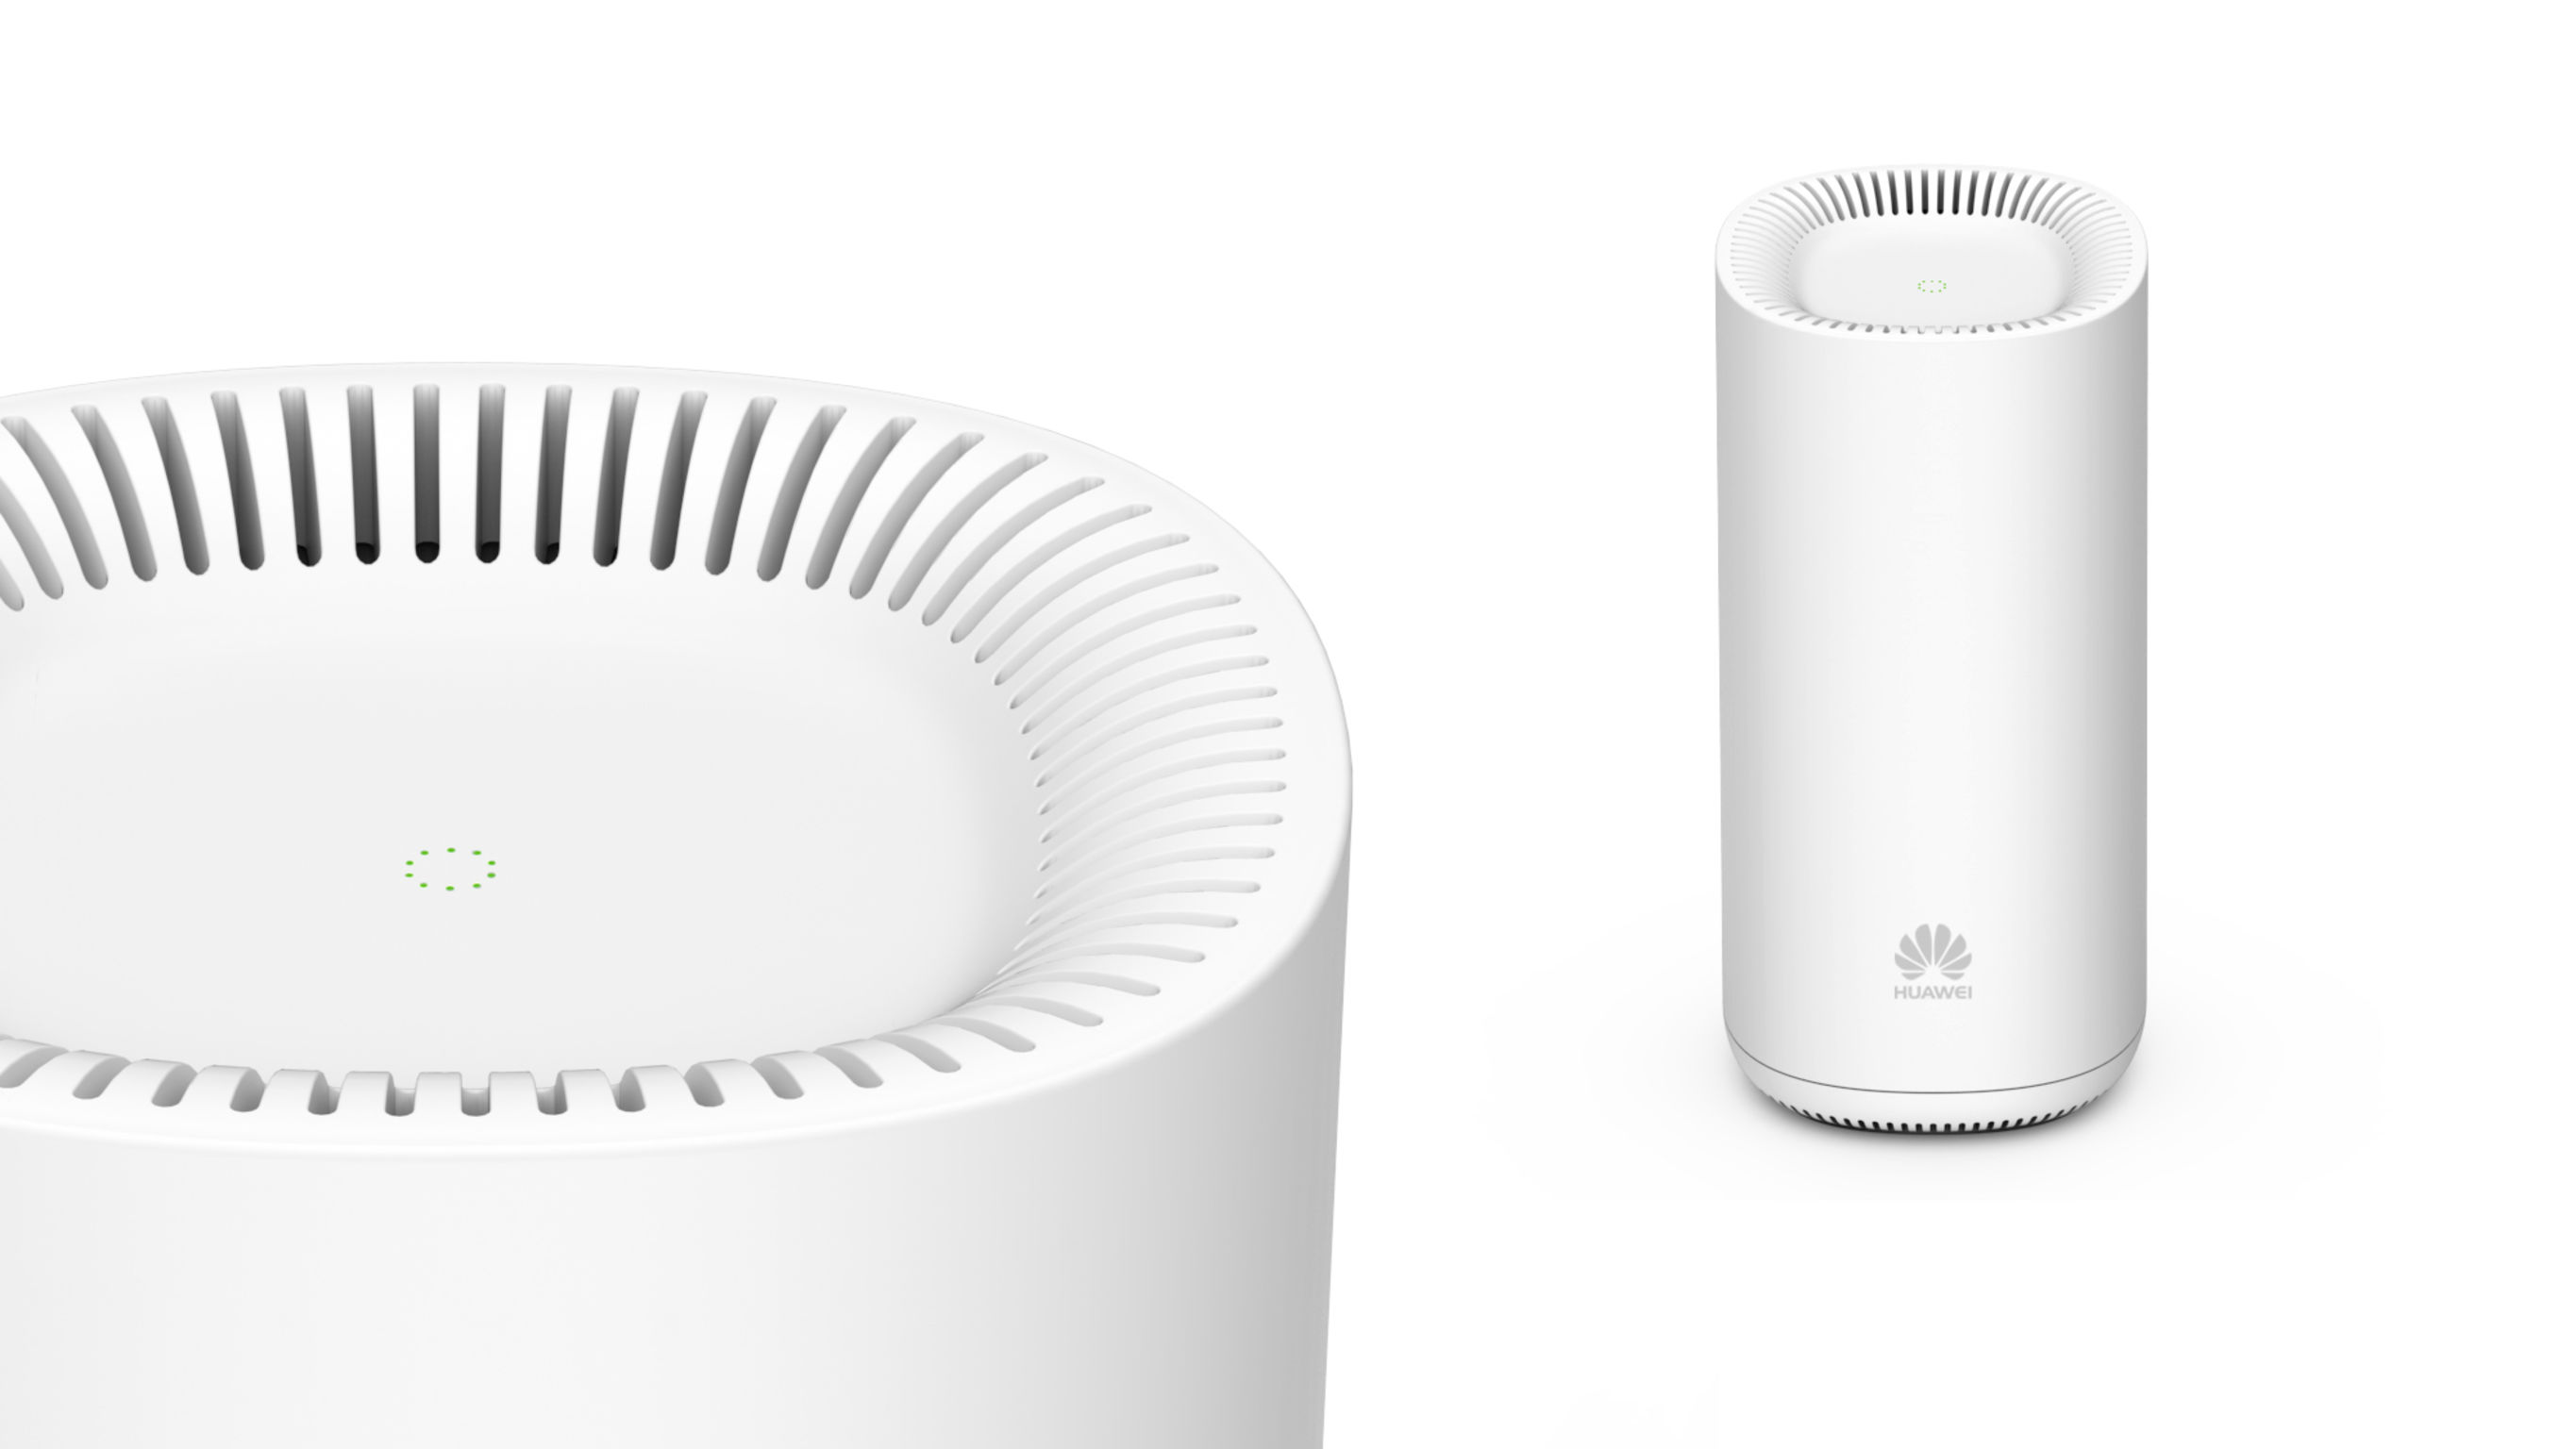 HUAWEI Wi-Fi AP | iF WORLD DESIGN GUIDE